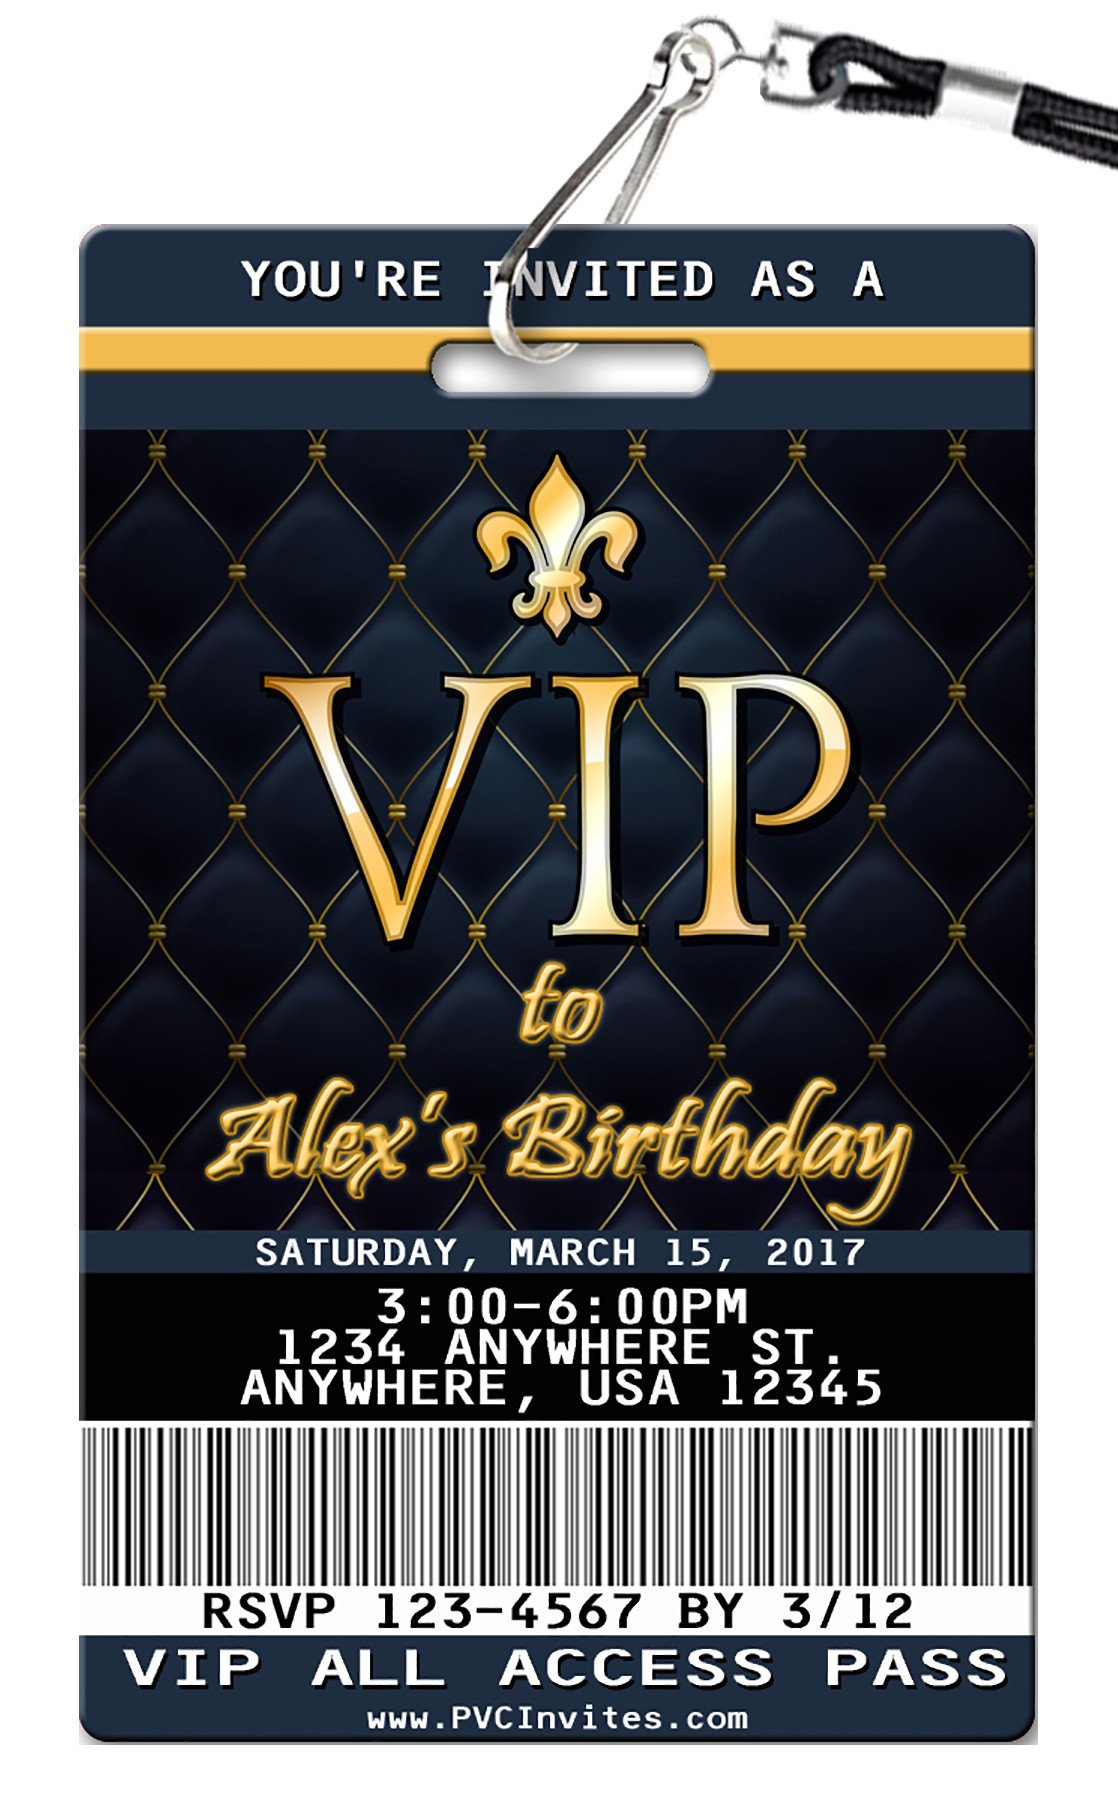 Vip Birthday Invitation Diy Birthday Invitations 21st Birthday